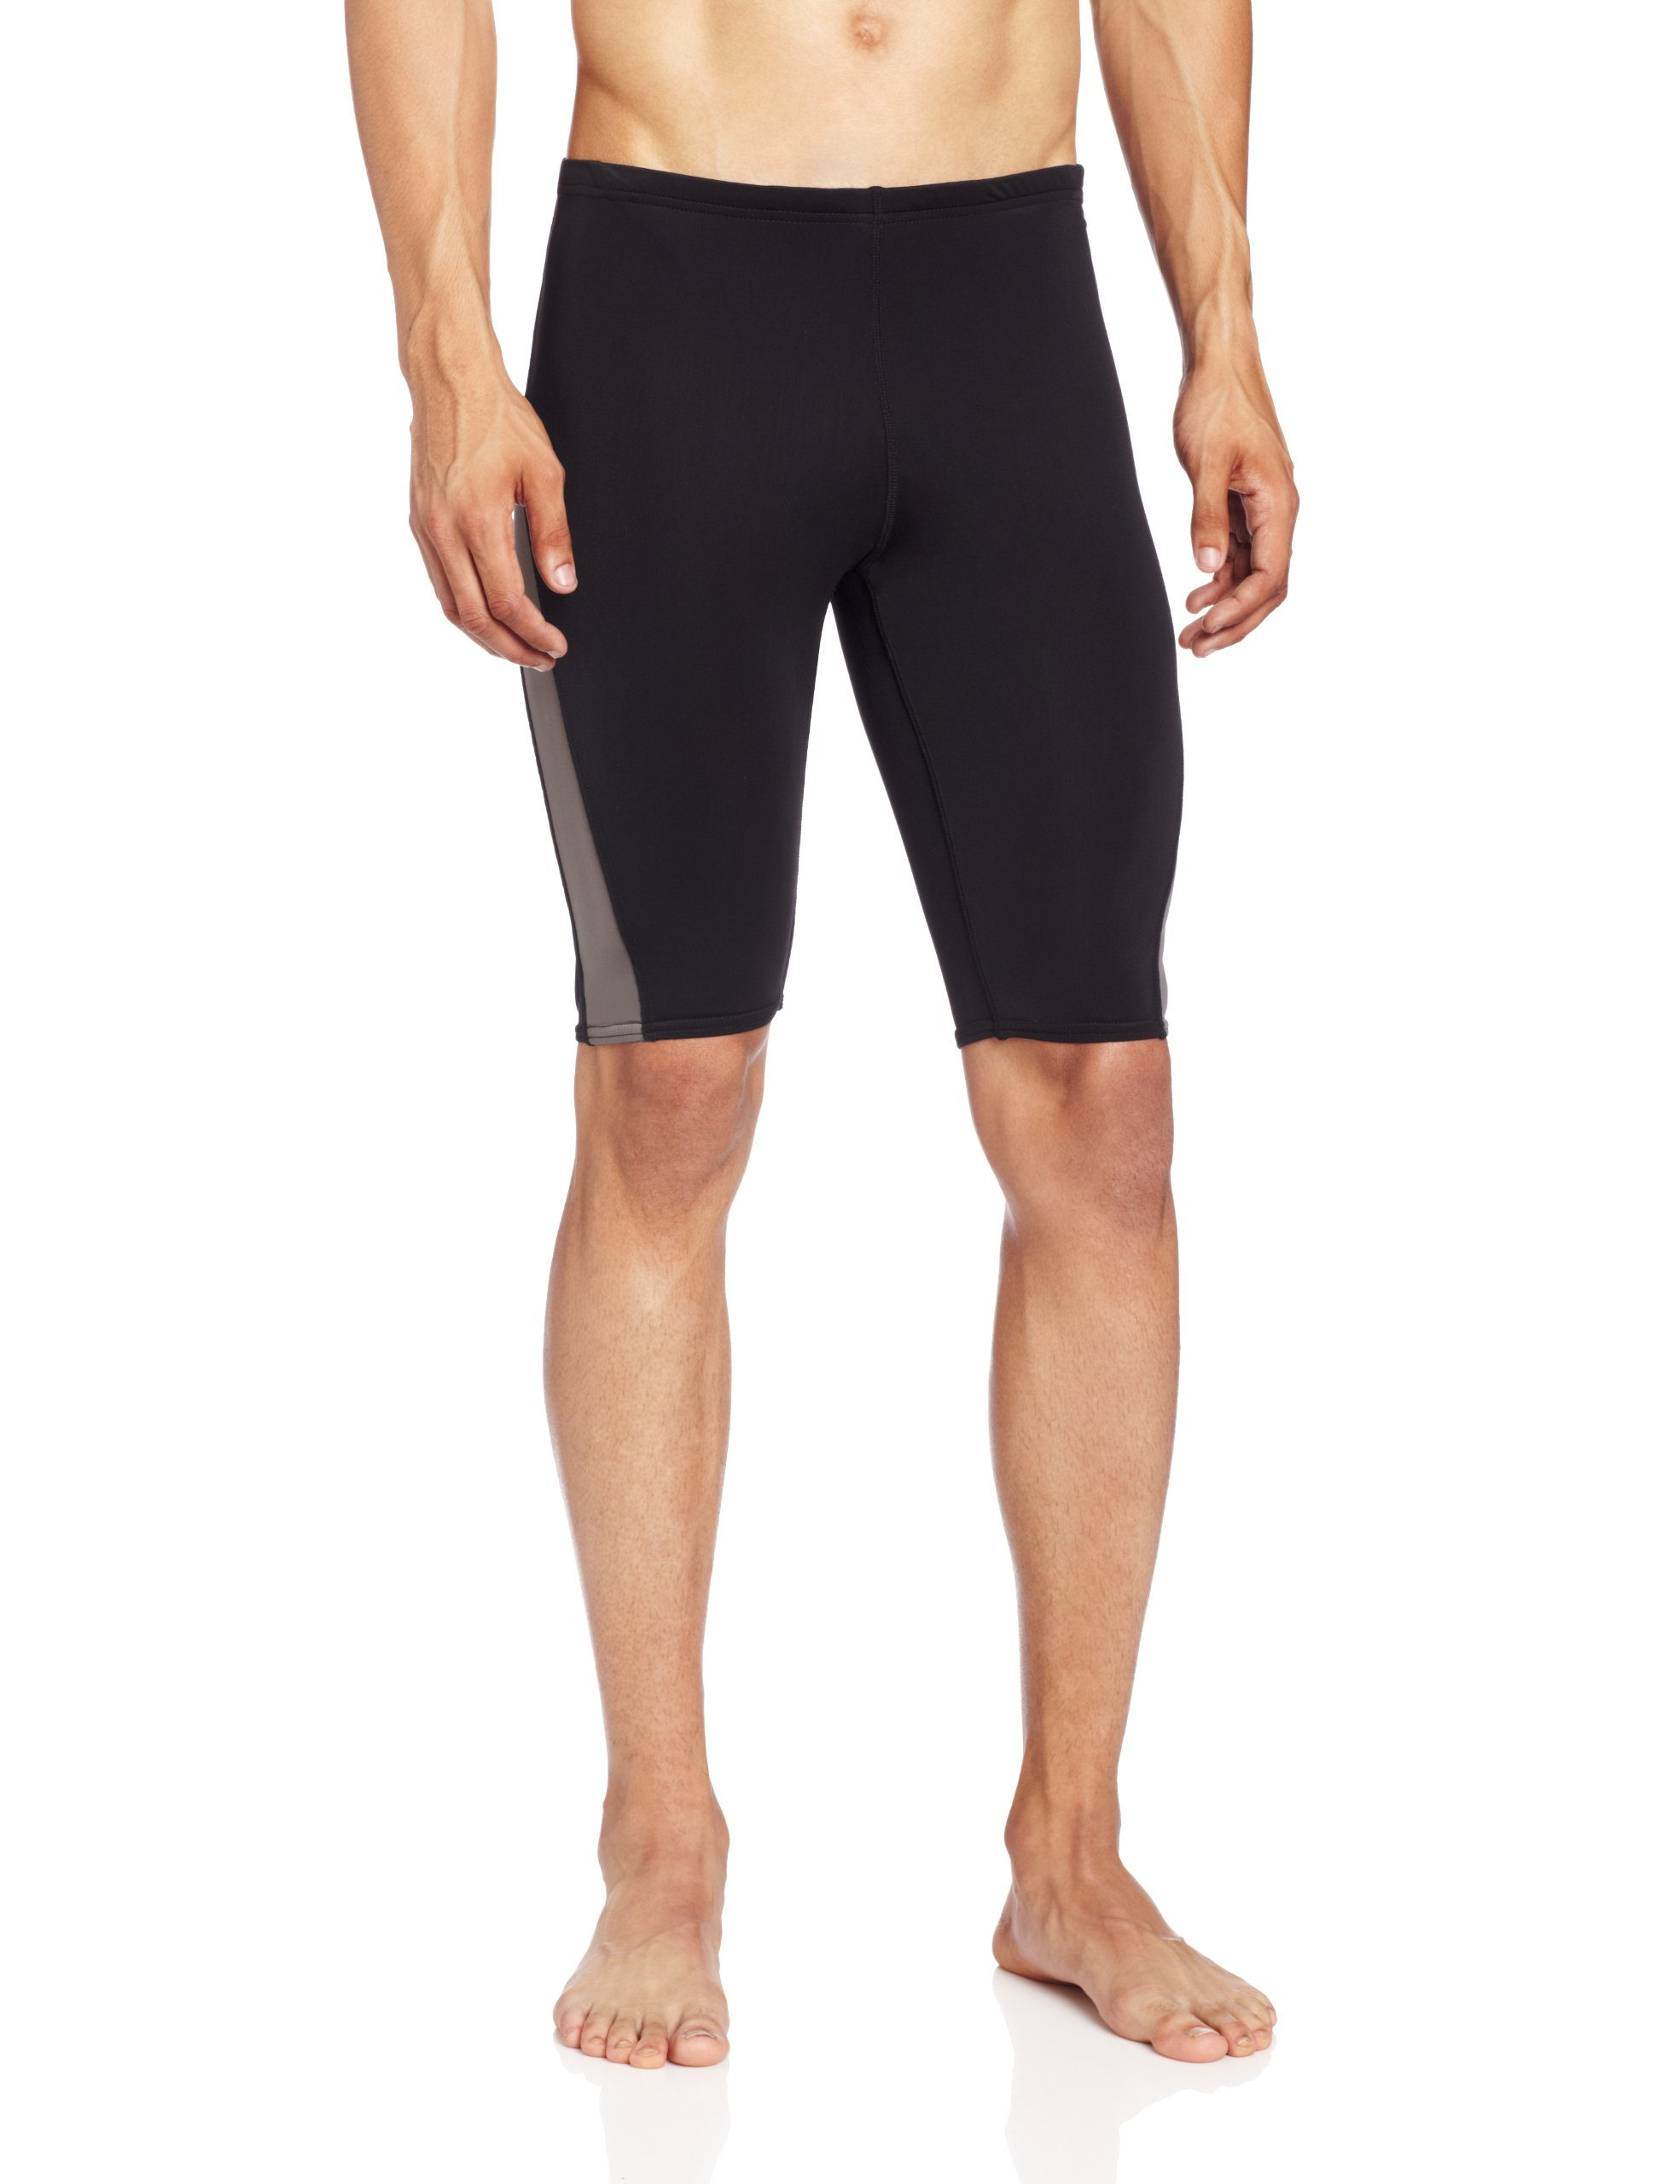 Kanu Surf Men's Competition Jammers Swim